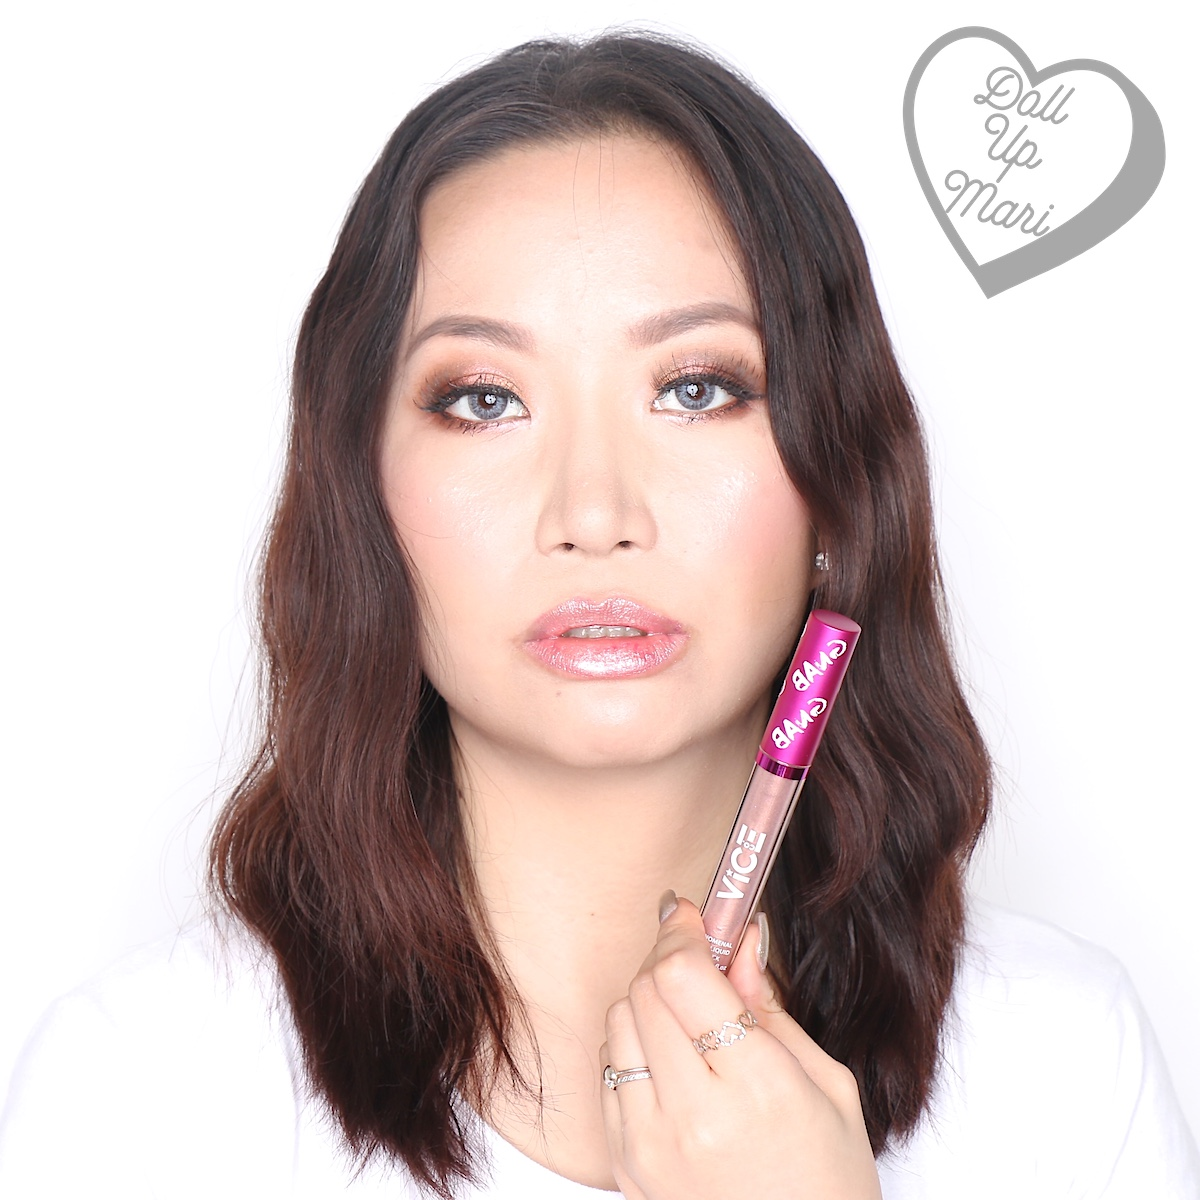 Mari wearing the Glitter Topper of the Saveeeh set of Vice X Bang Lip set collection